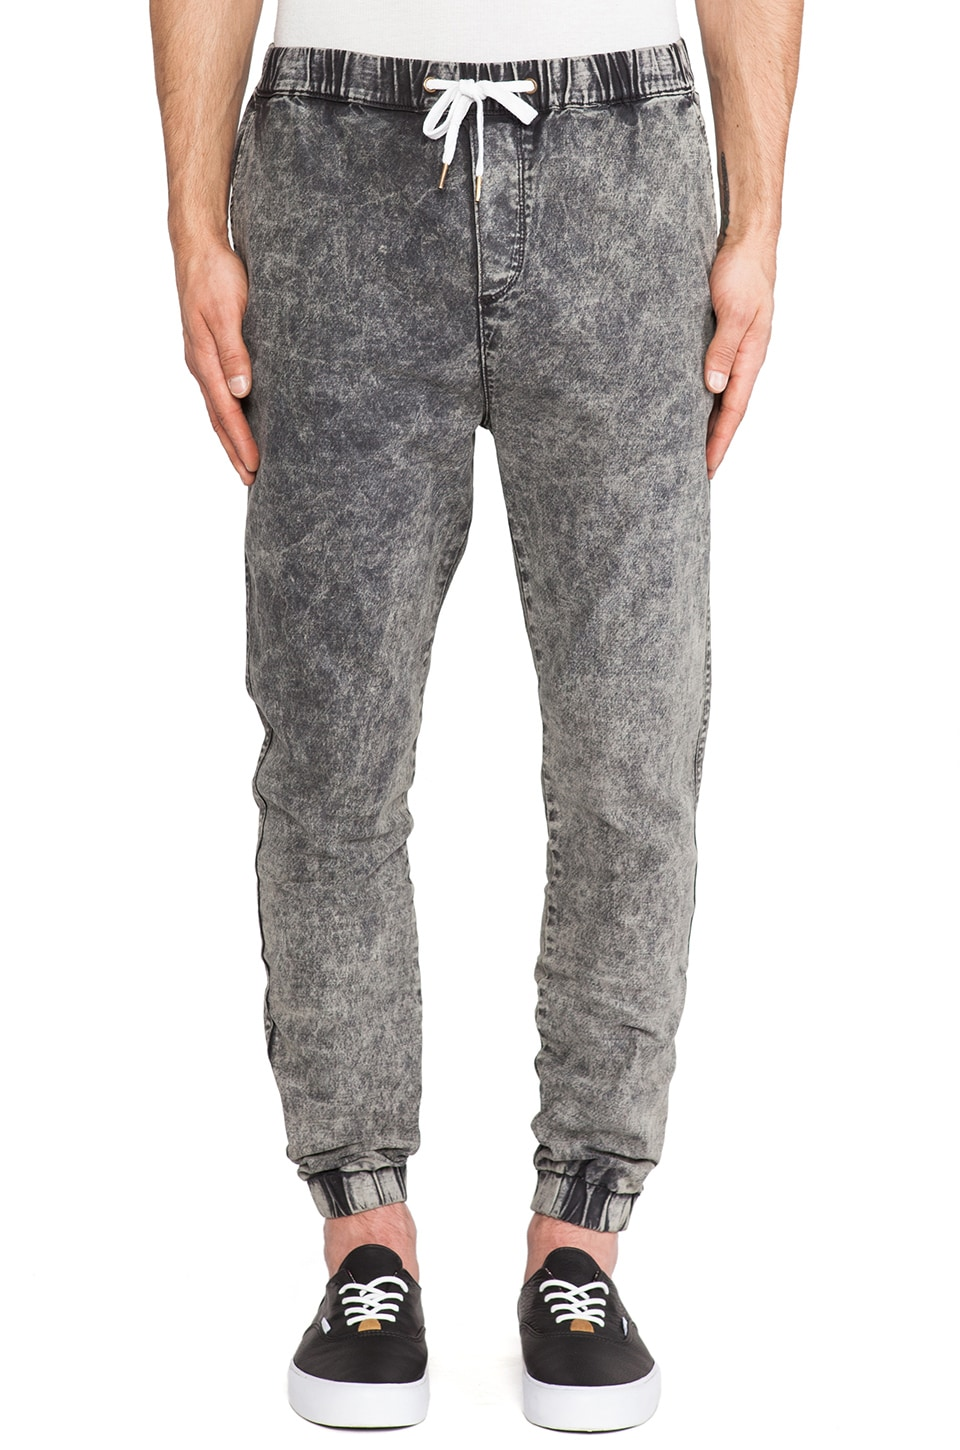 Ezekiel Acid Trip Pant in Black